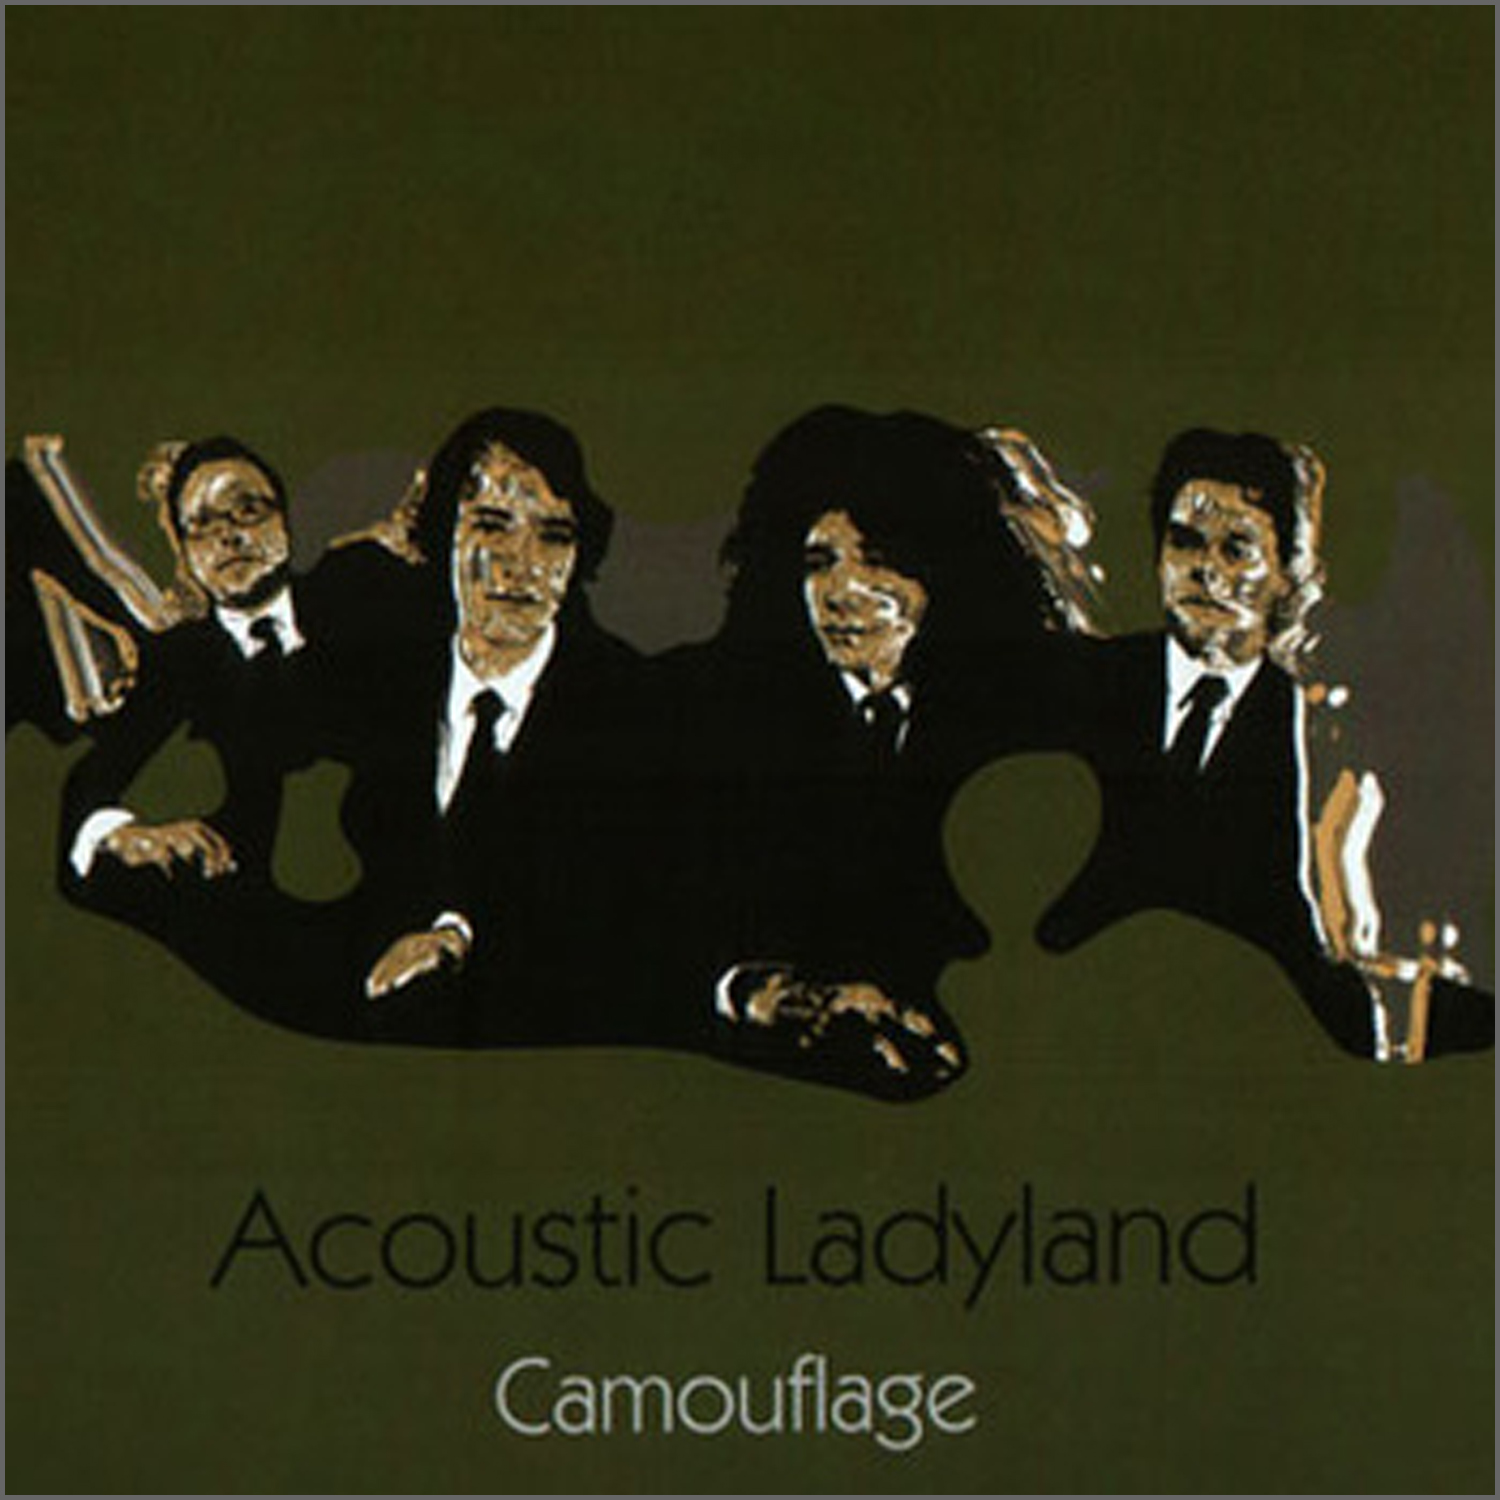 Acoustic Ladyland - Camouflage (2004)